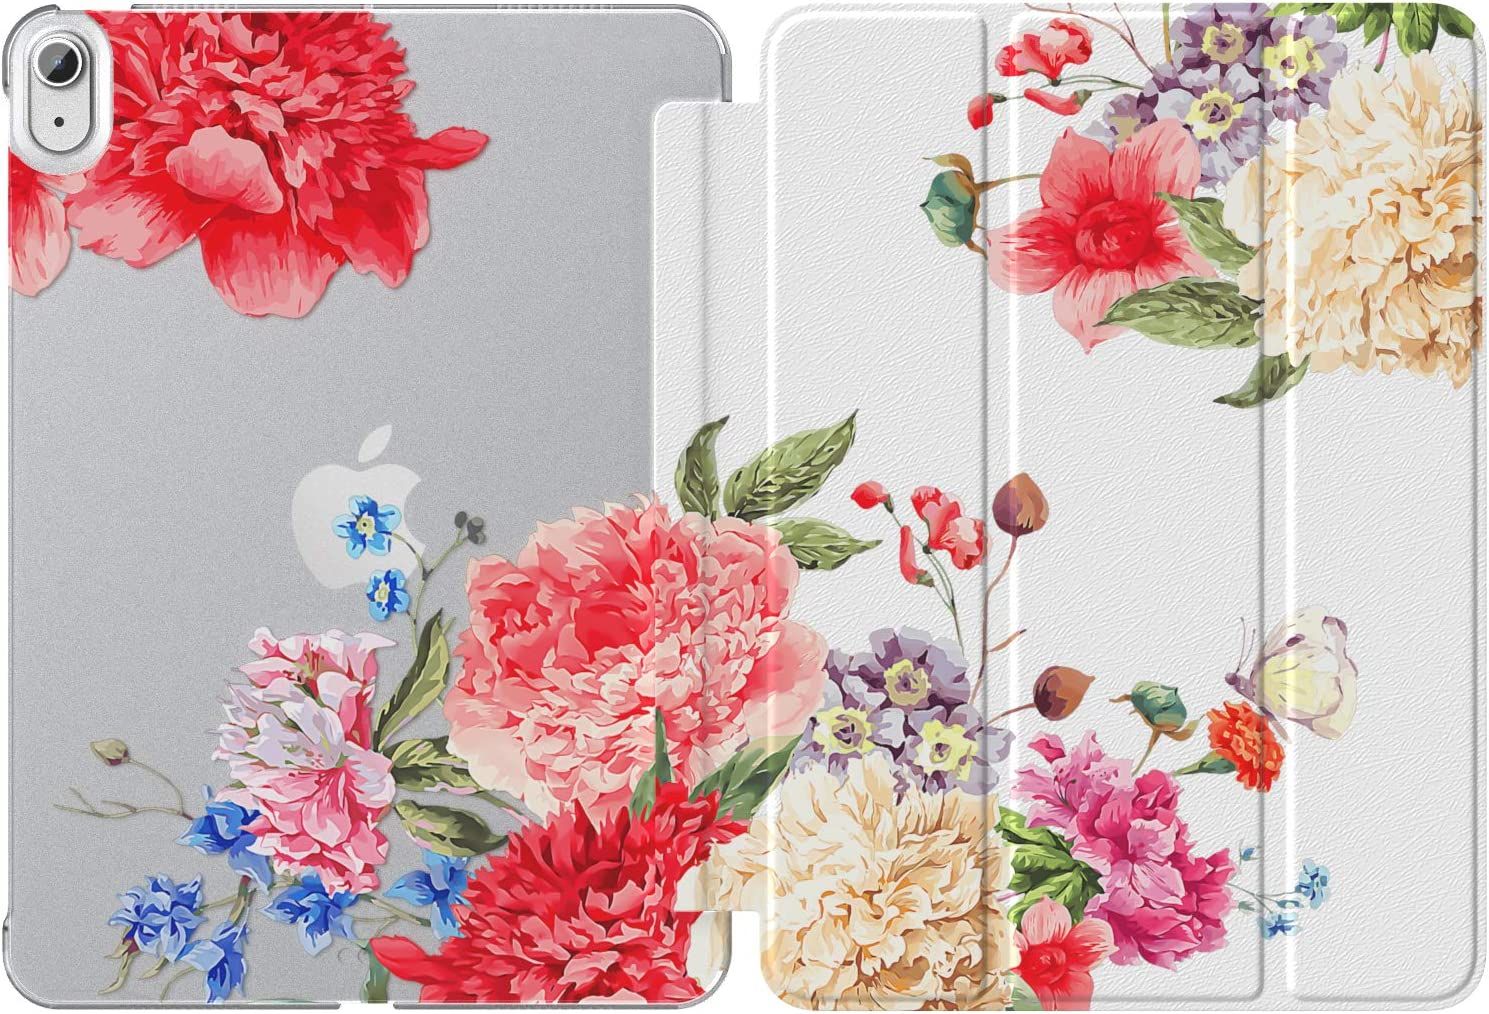 MoKo Case Fit New iPad Air 4th Generation 2020 - iPad Air 4 Case 10.9 inch Slim Lightweight Shell Stand Cover with Translucent Frosted Back Protector for iPad Air 4, Auto Wake/Sleep,Flowers Blossom